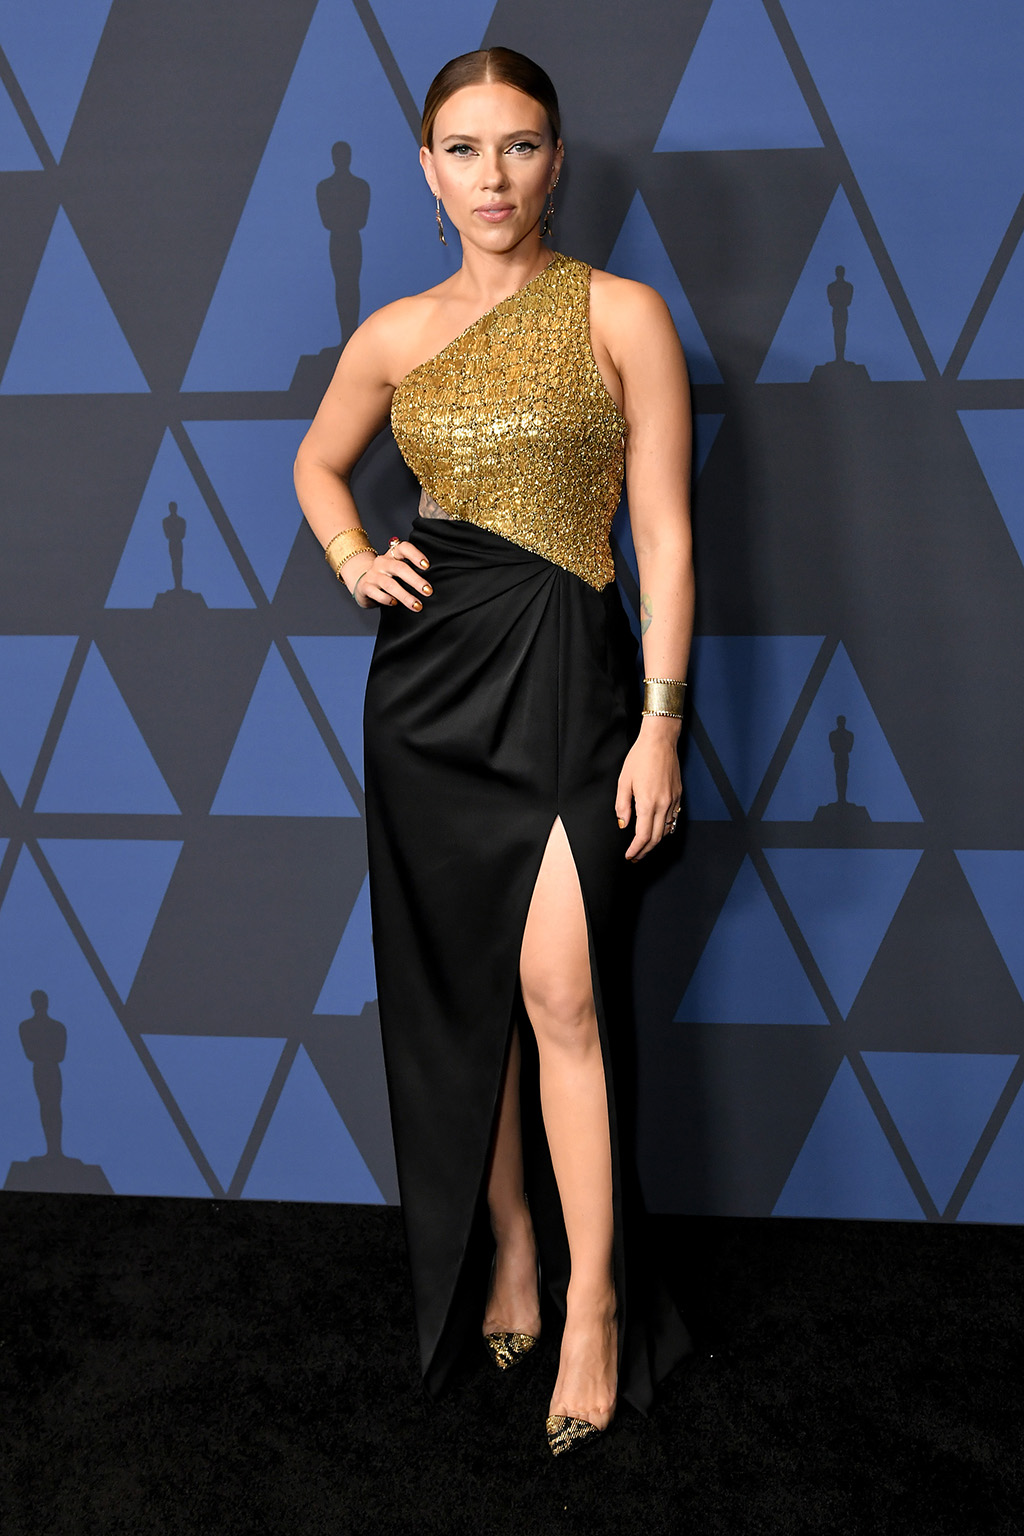 Scarlett Johansson, celine dress, black and gold gown, gianvito rossi shoes, gold pumps, Governors Awards, Arrivals, Dolby Theatre, Los Angeles, USA - 27 Oct 2019Wearing Celine